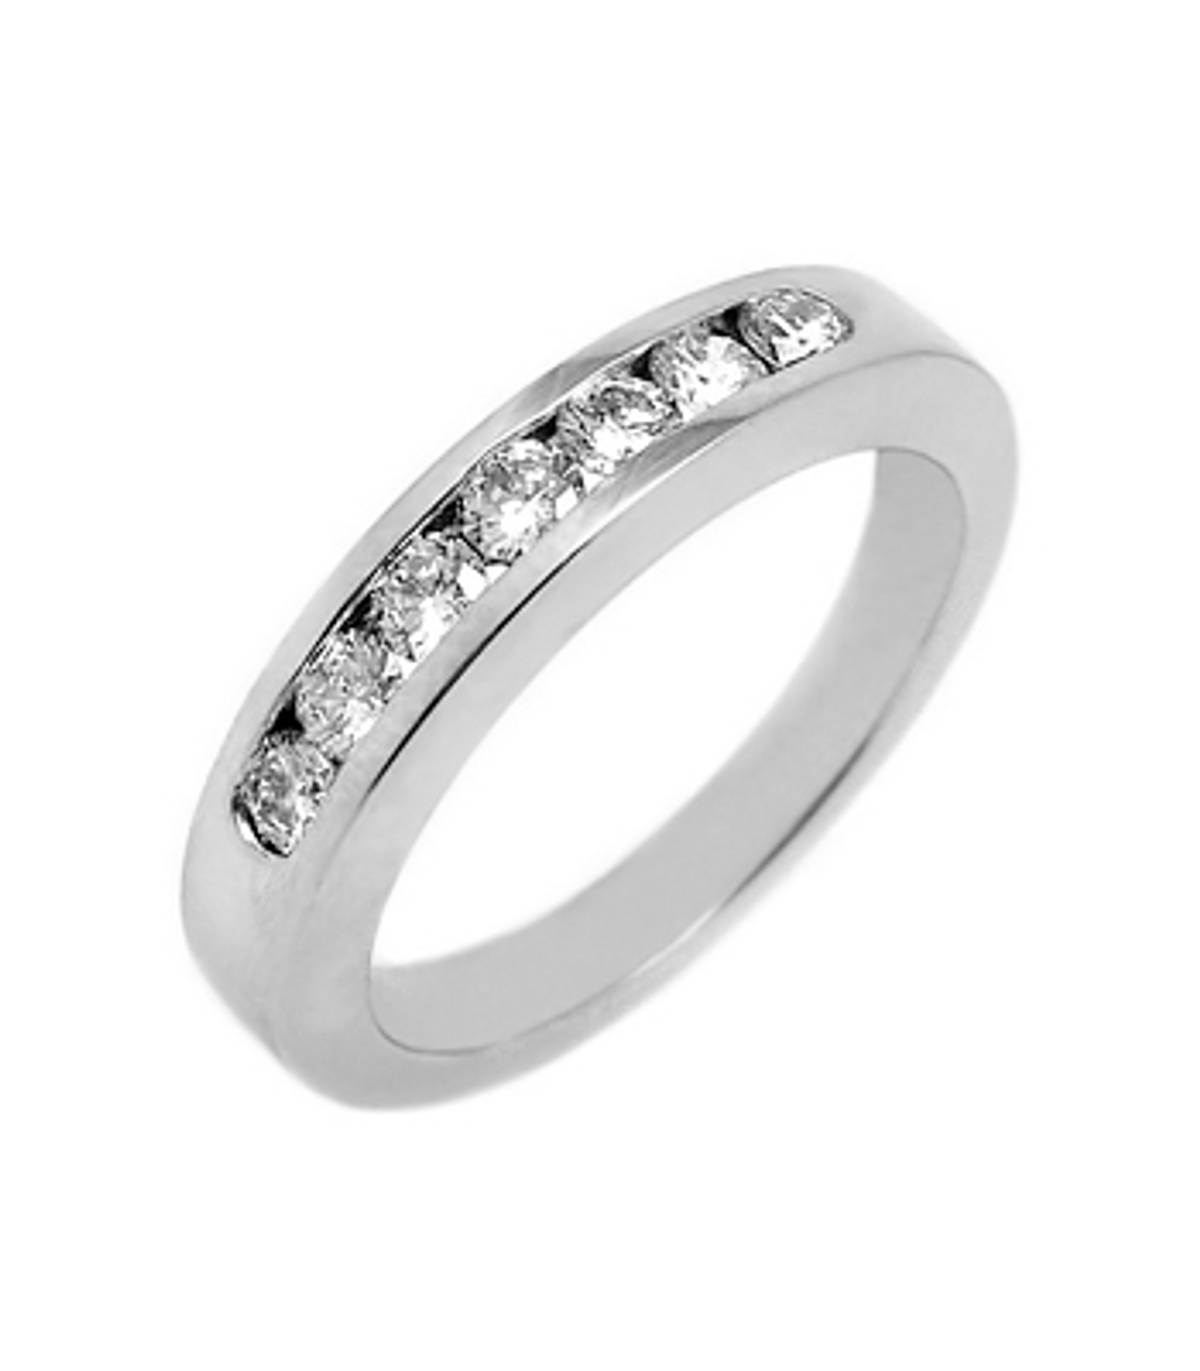 18k white gold 7st brilliant cut diamond channel set eternity ring Carat: total diamond weight 0.15cts Metal: 18k white gold